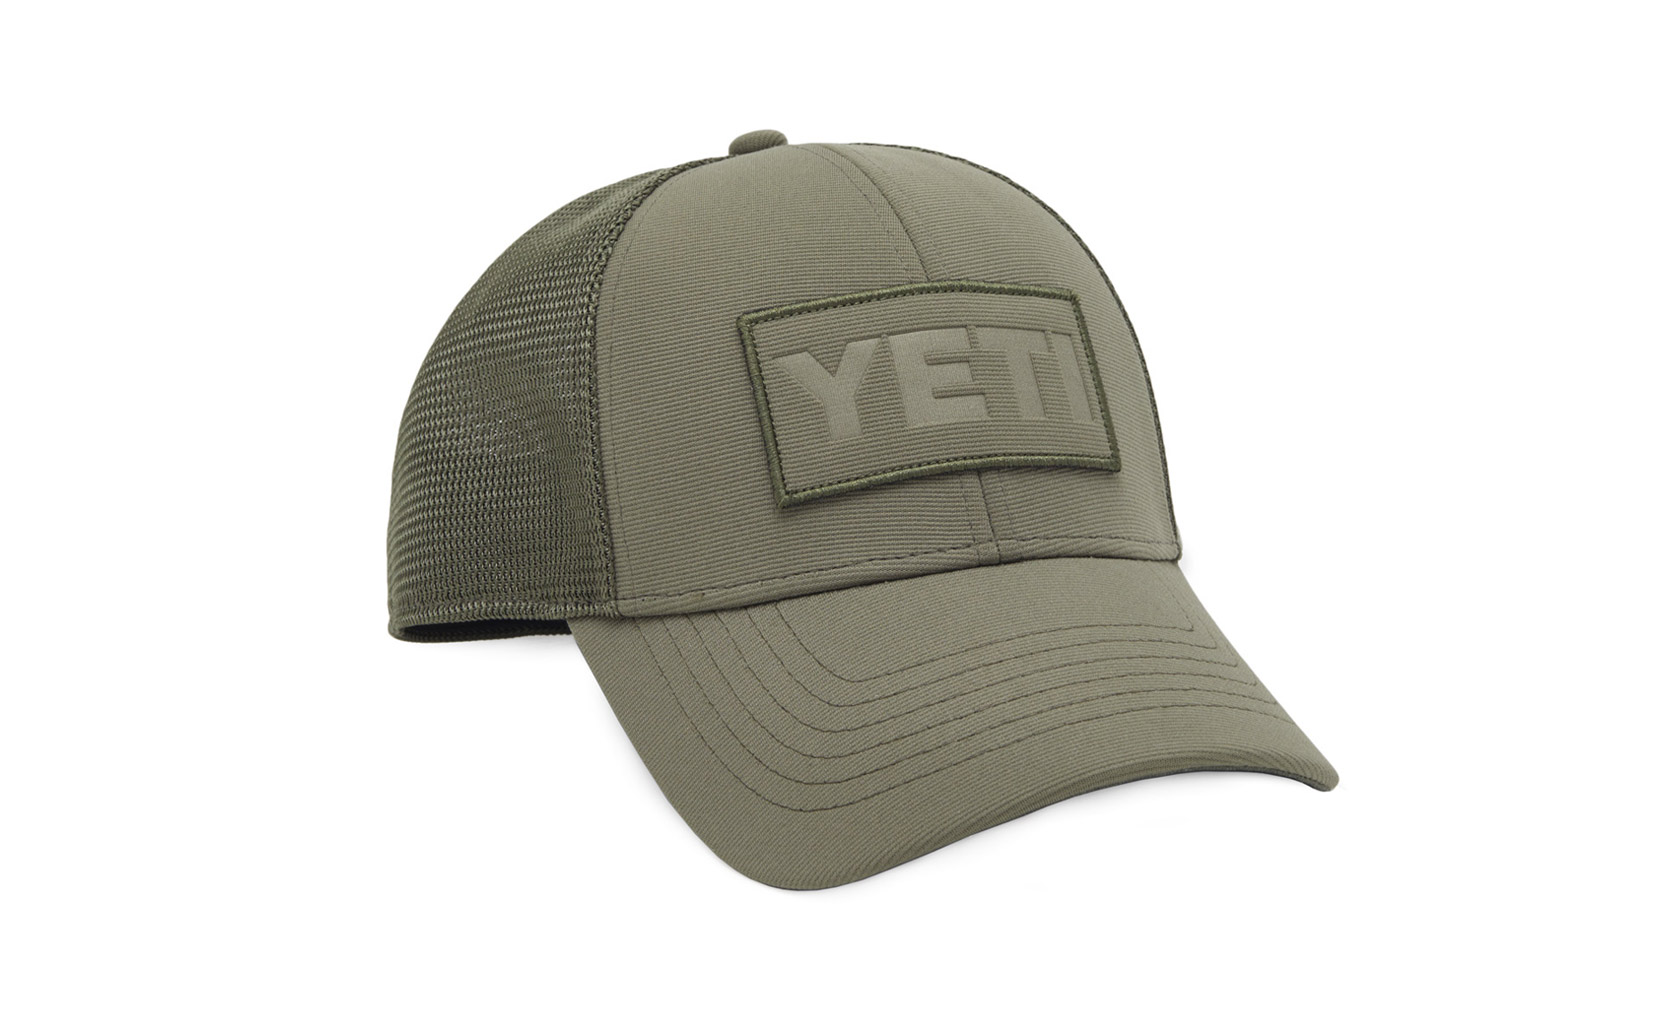 b2f8e8c6cc0 YETI Patch Full Panel Hat